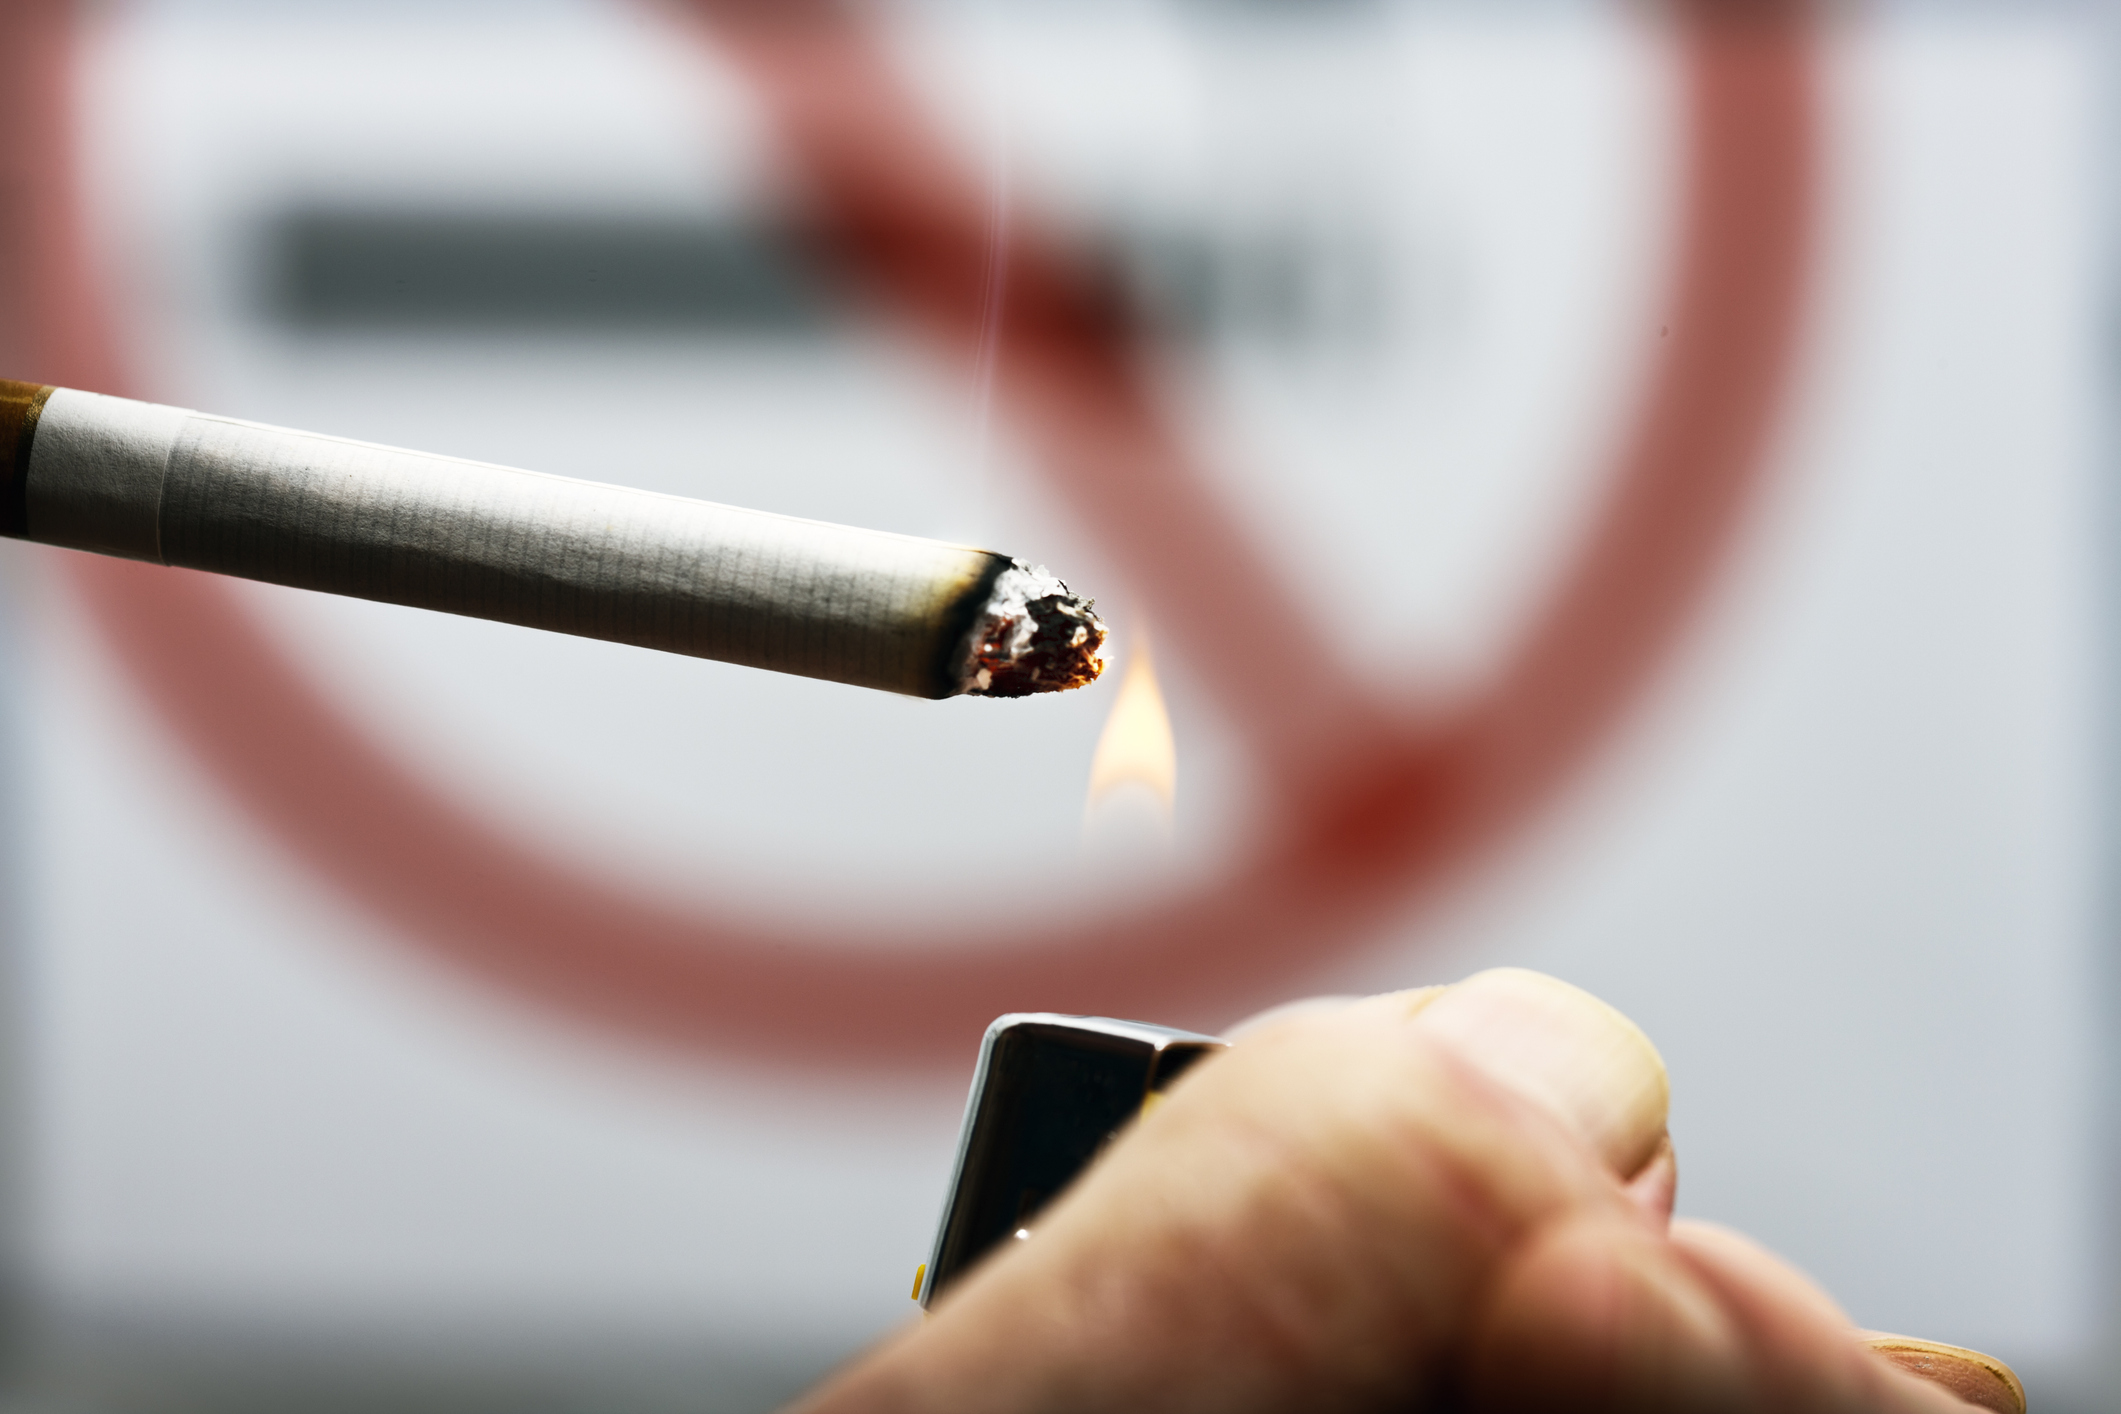 'Black market is booming': The unintended consequence of tough new tax laws on cigarettes